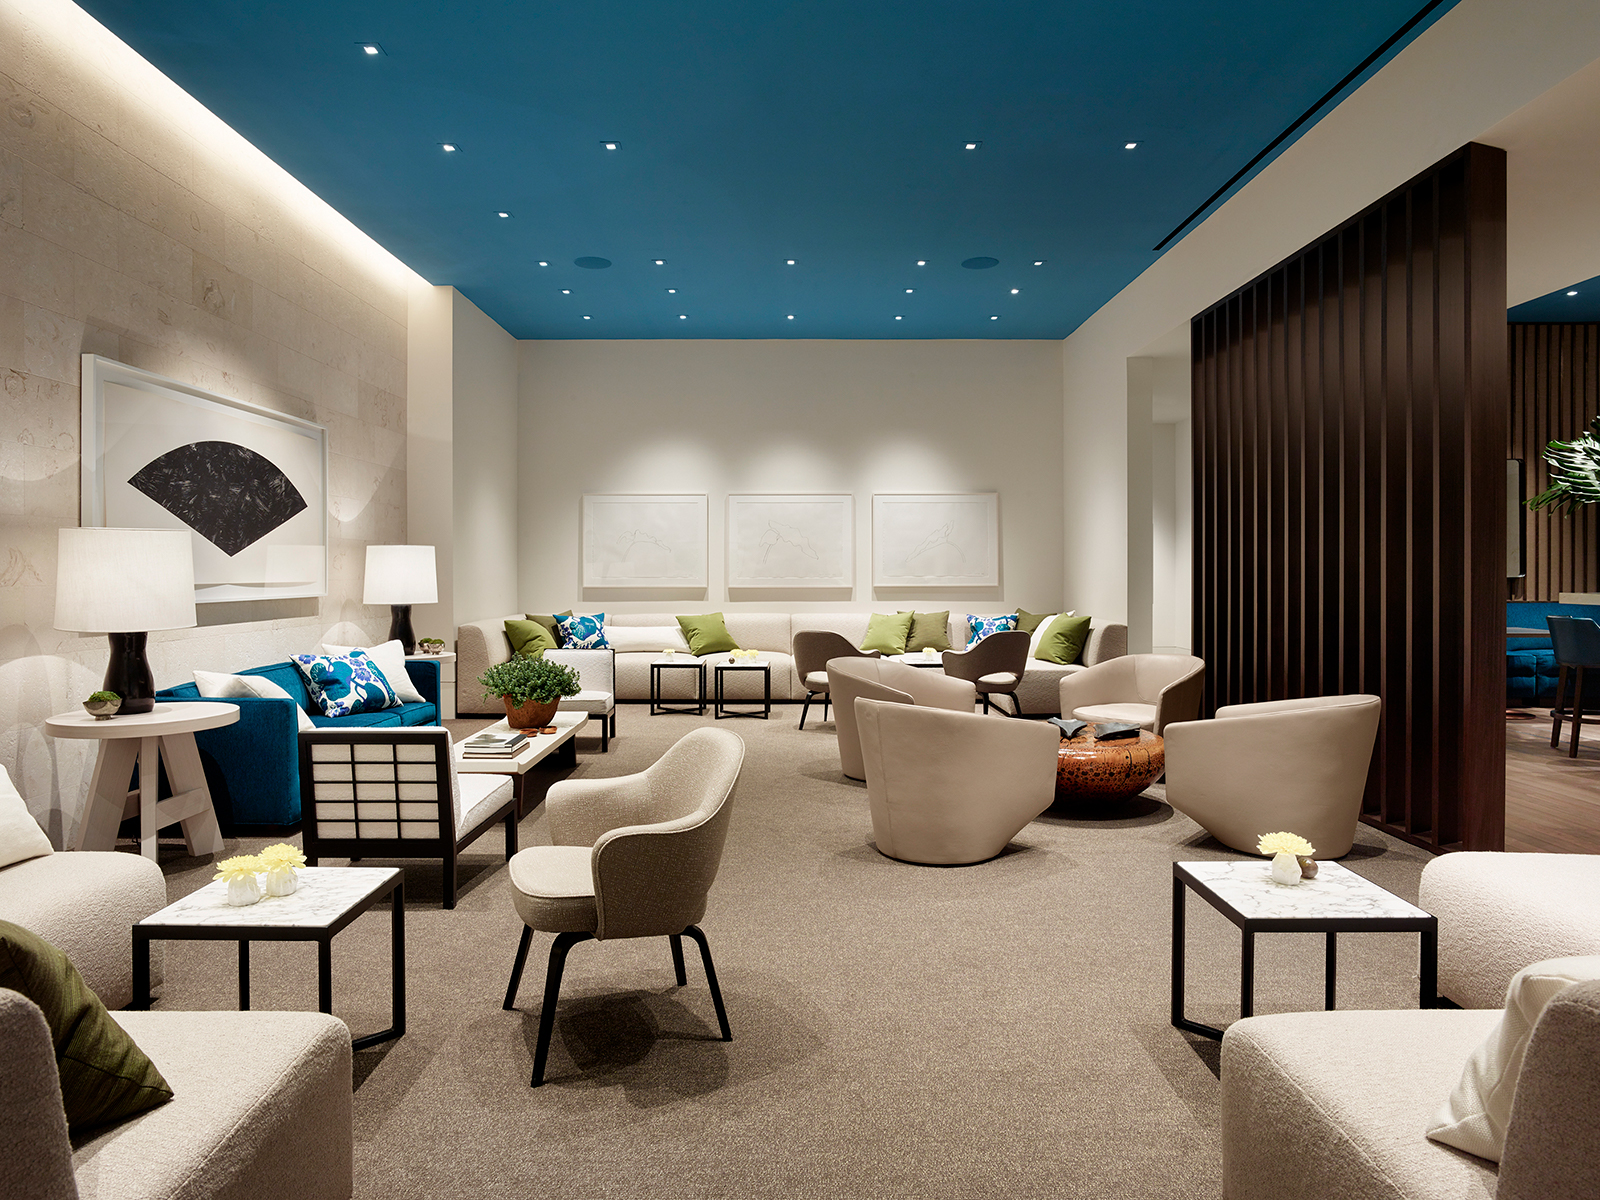 Park Lane Lounge Image 4